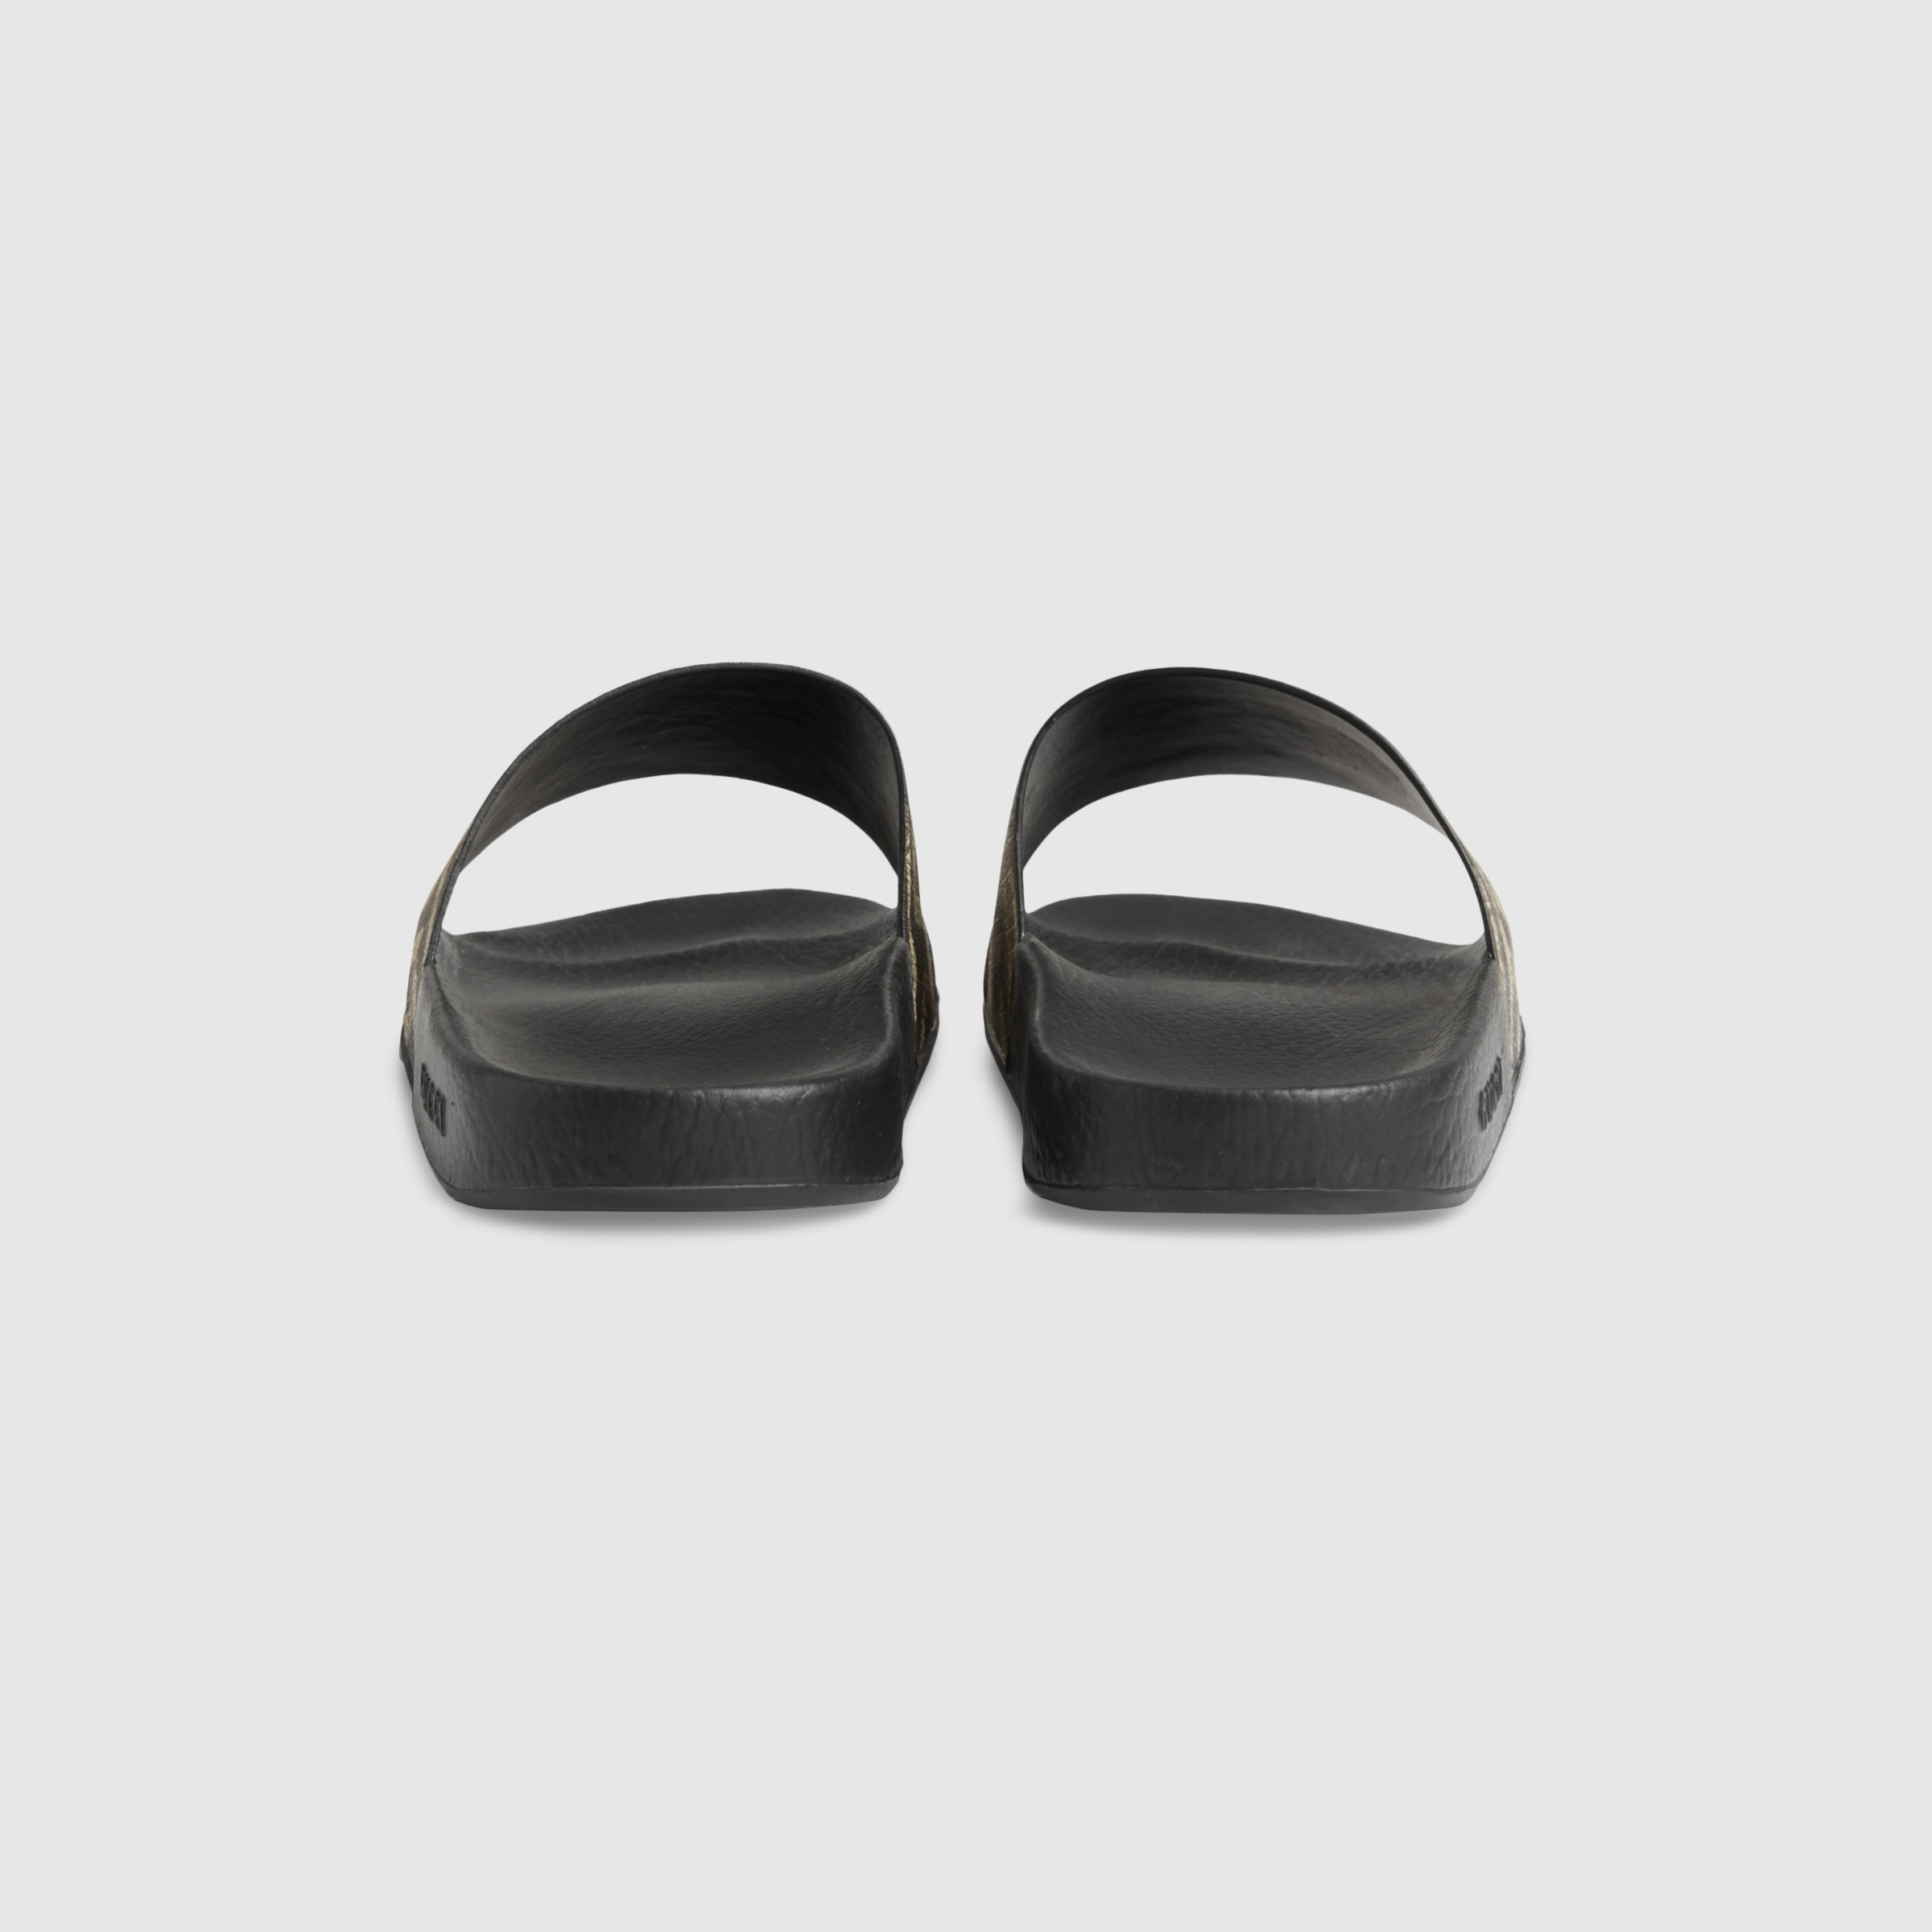 c58a64f4790 gucci gg caleido sandal in black for men lyst. Gucci gg caleido sandal in  black for men lyst . Gucci sandals 28 images leather sandal gucci s sandals  .